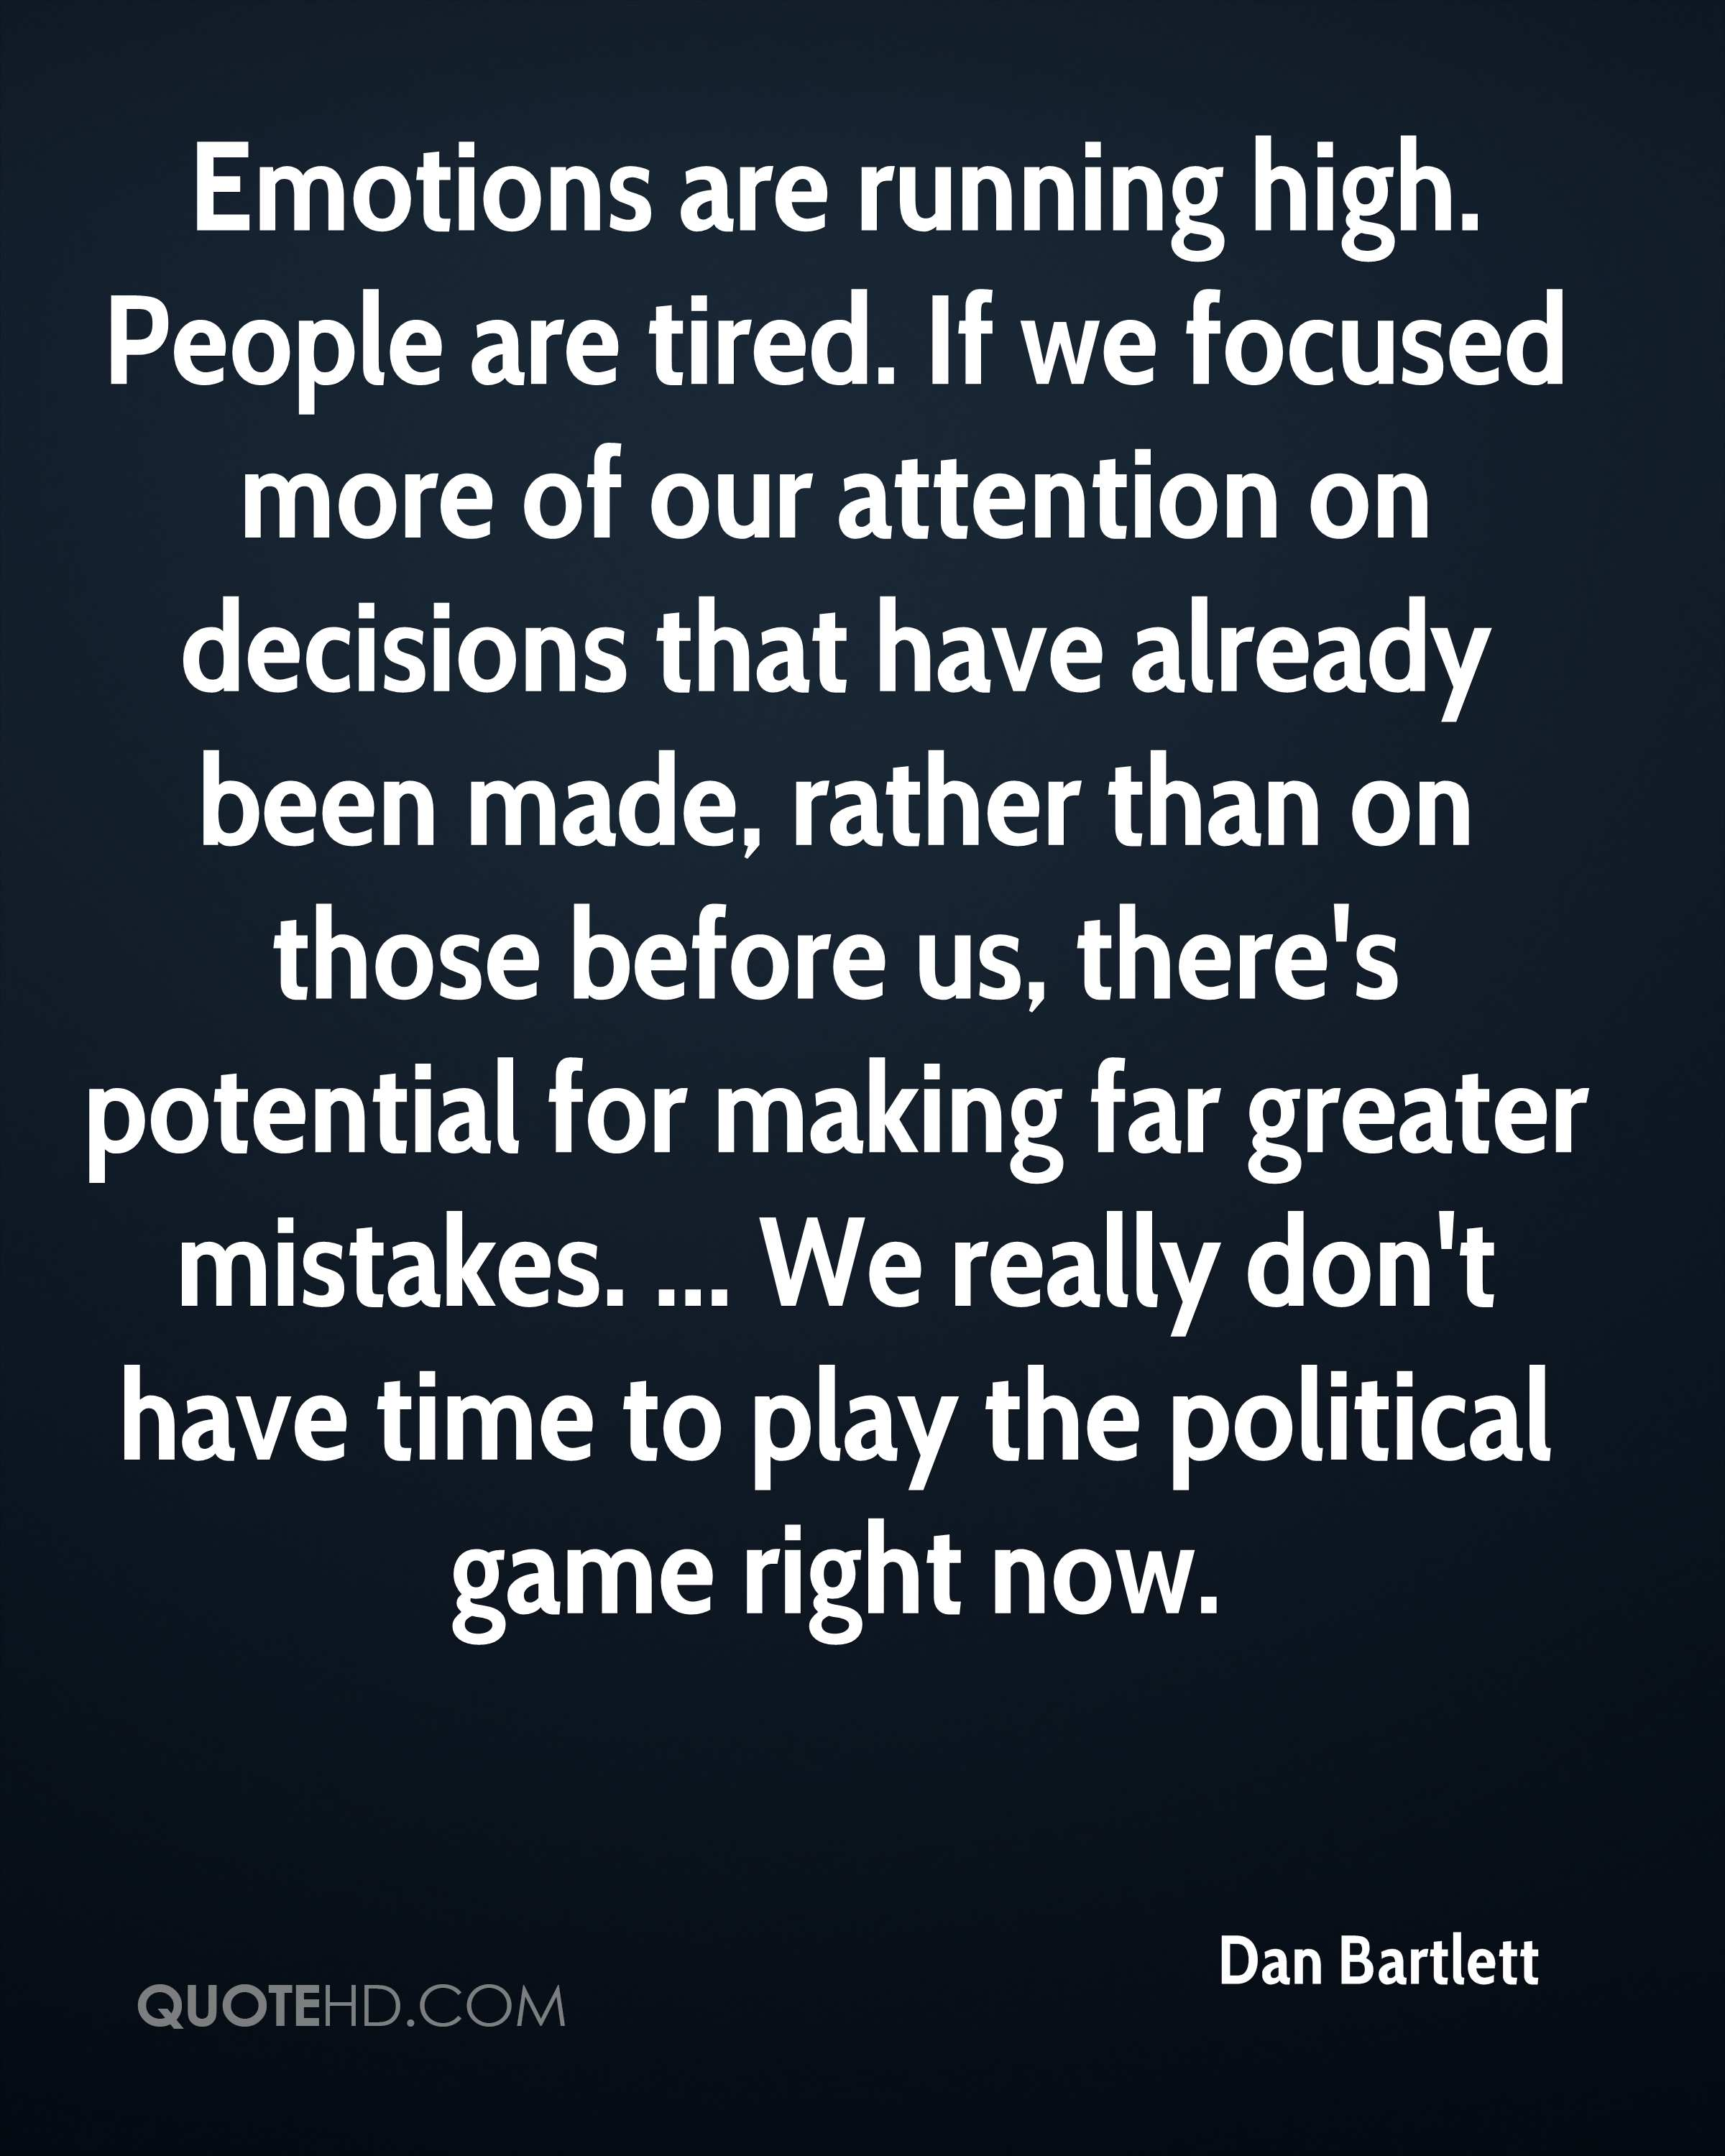 Emotions are running high. People are tired. If we focused more of our attention on decisions that have already been made, rather than on those before us, there's potential for making far greater mistakes. ... We really don't have time to play the political game right now.